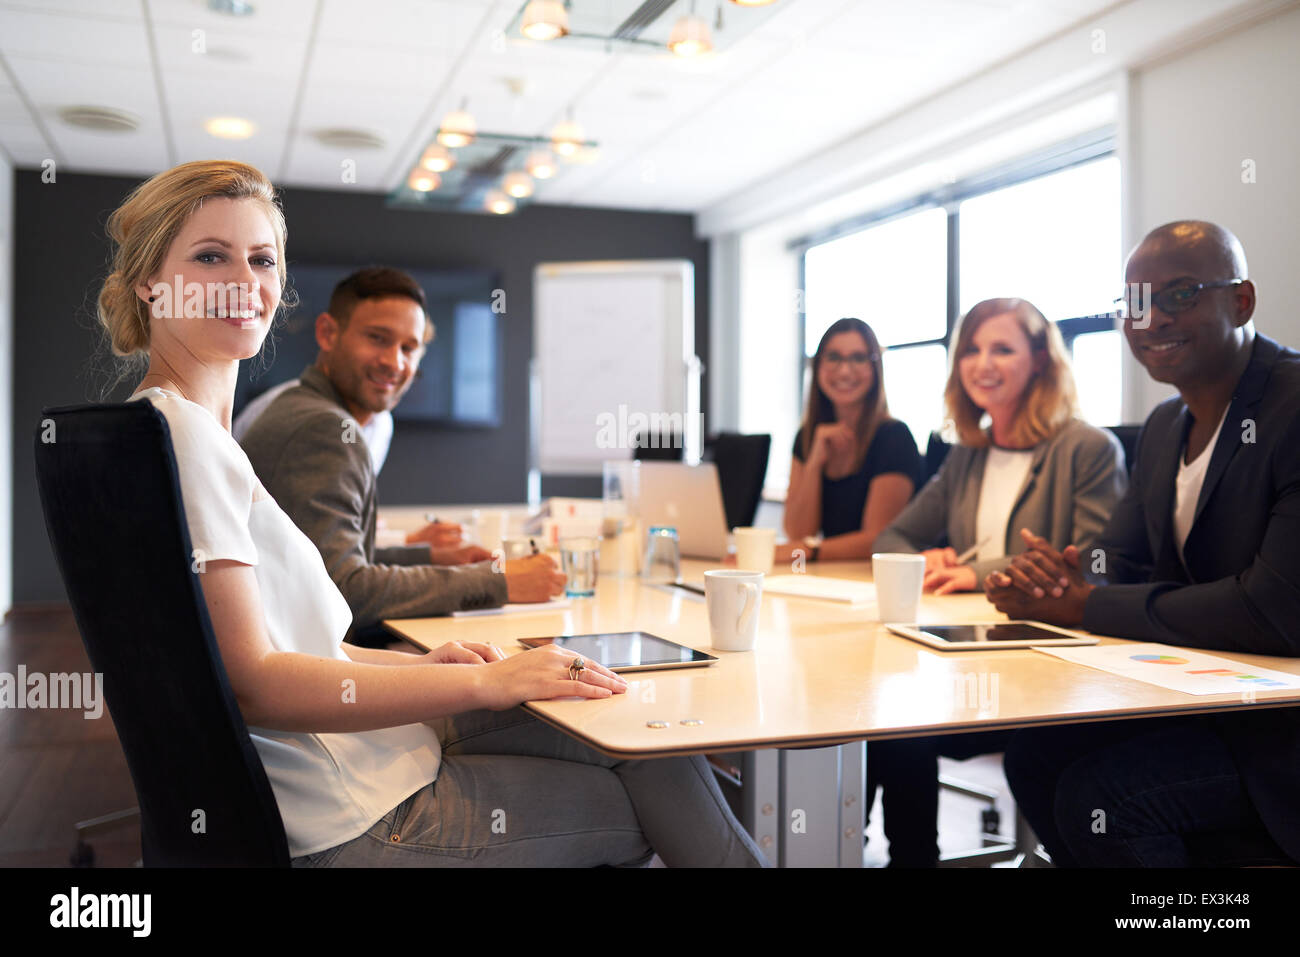 Group of young executives smiling at camera during a work meeting. - Stock Image